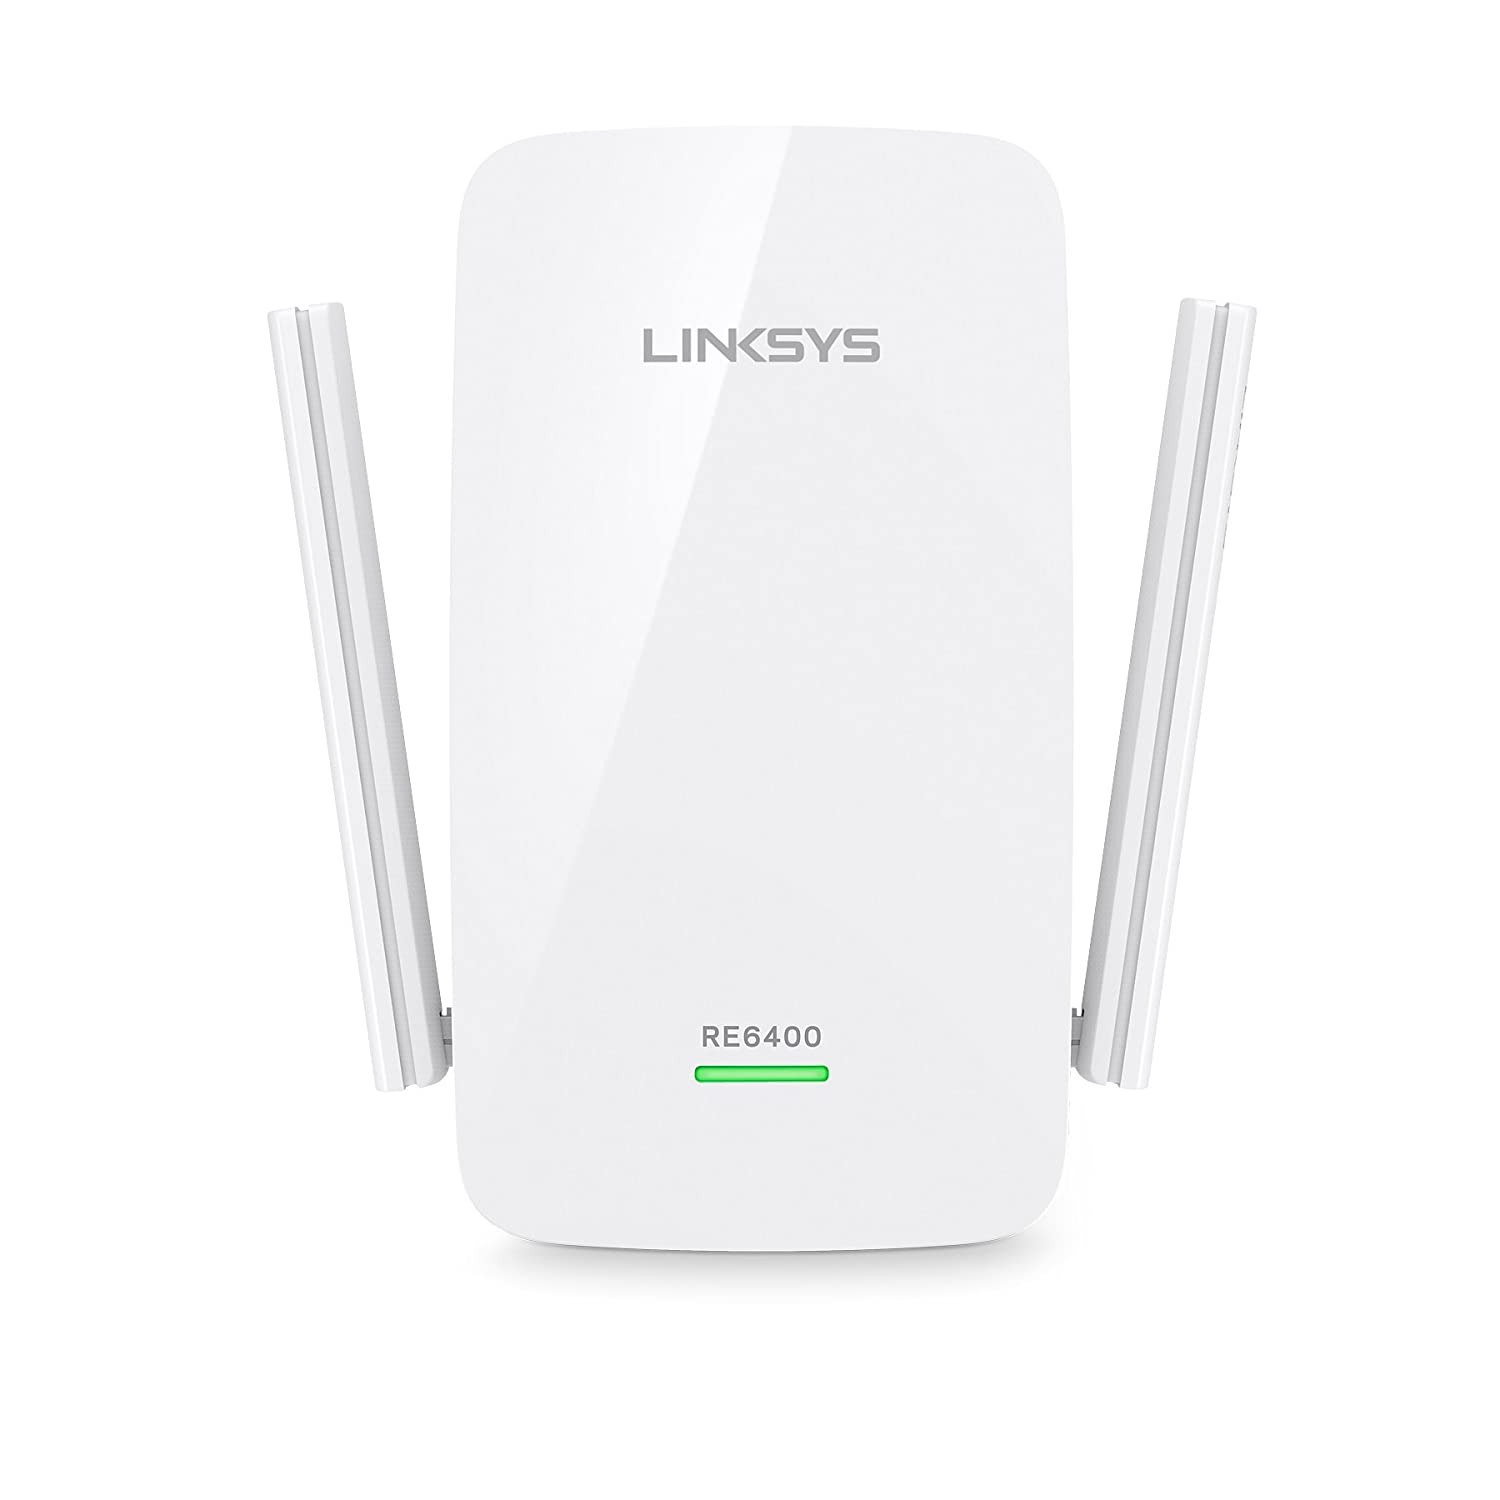 Linksys AC3000 Max-Stream Tri-Band Wi-Fi Range Extender/Booster / Repeater (RE9000)